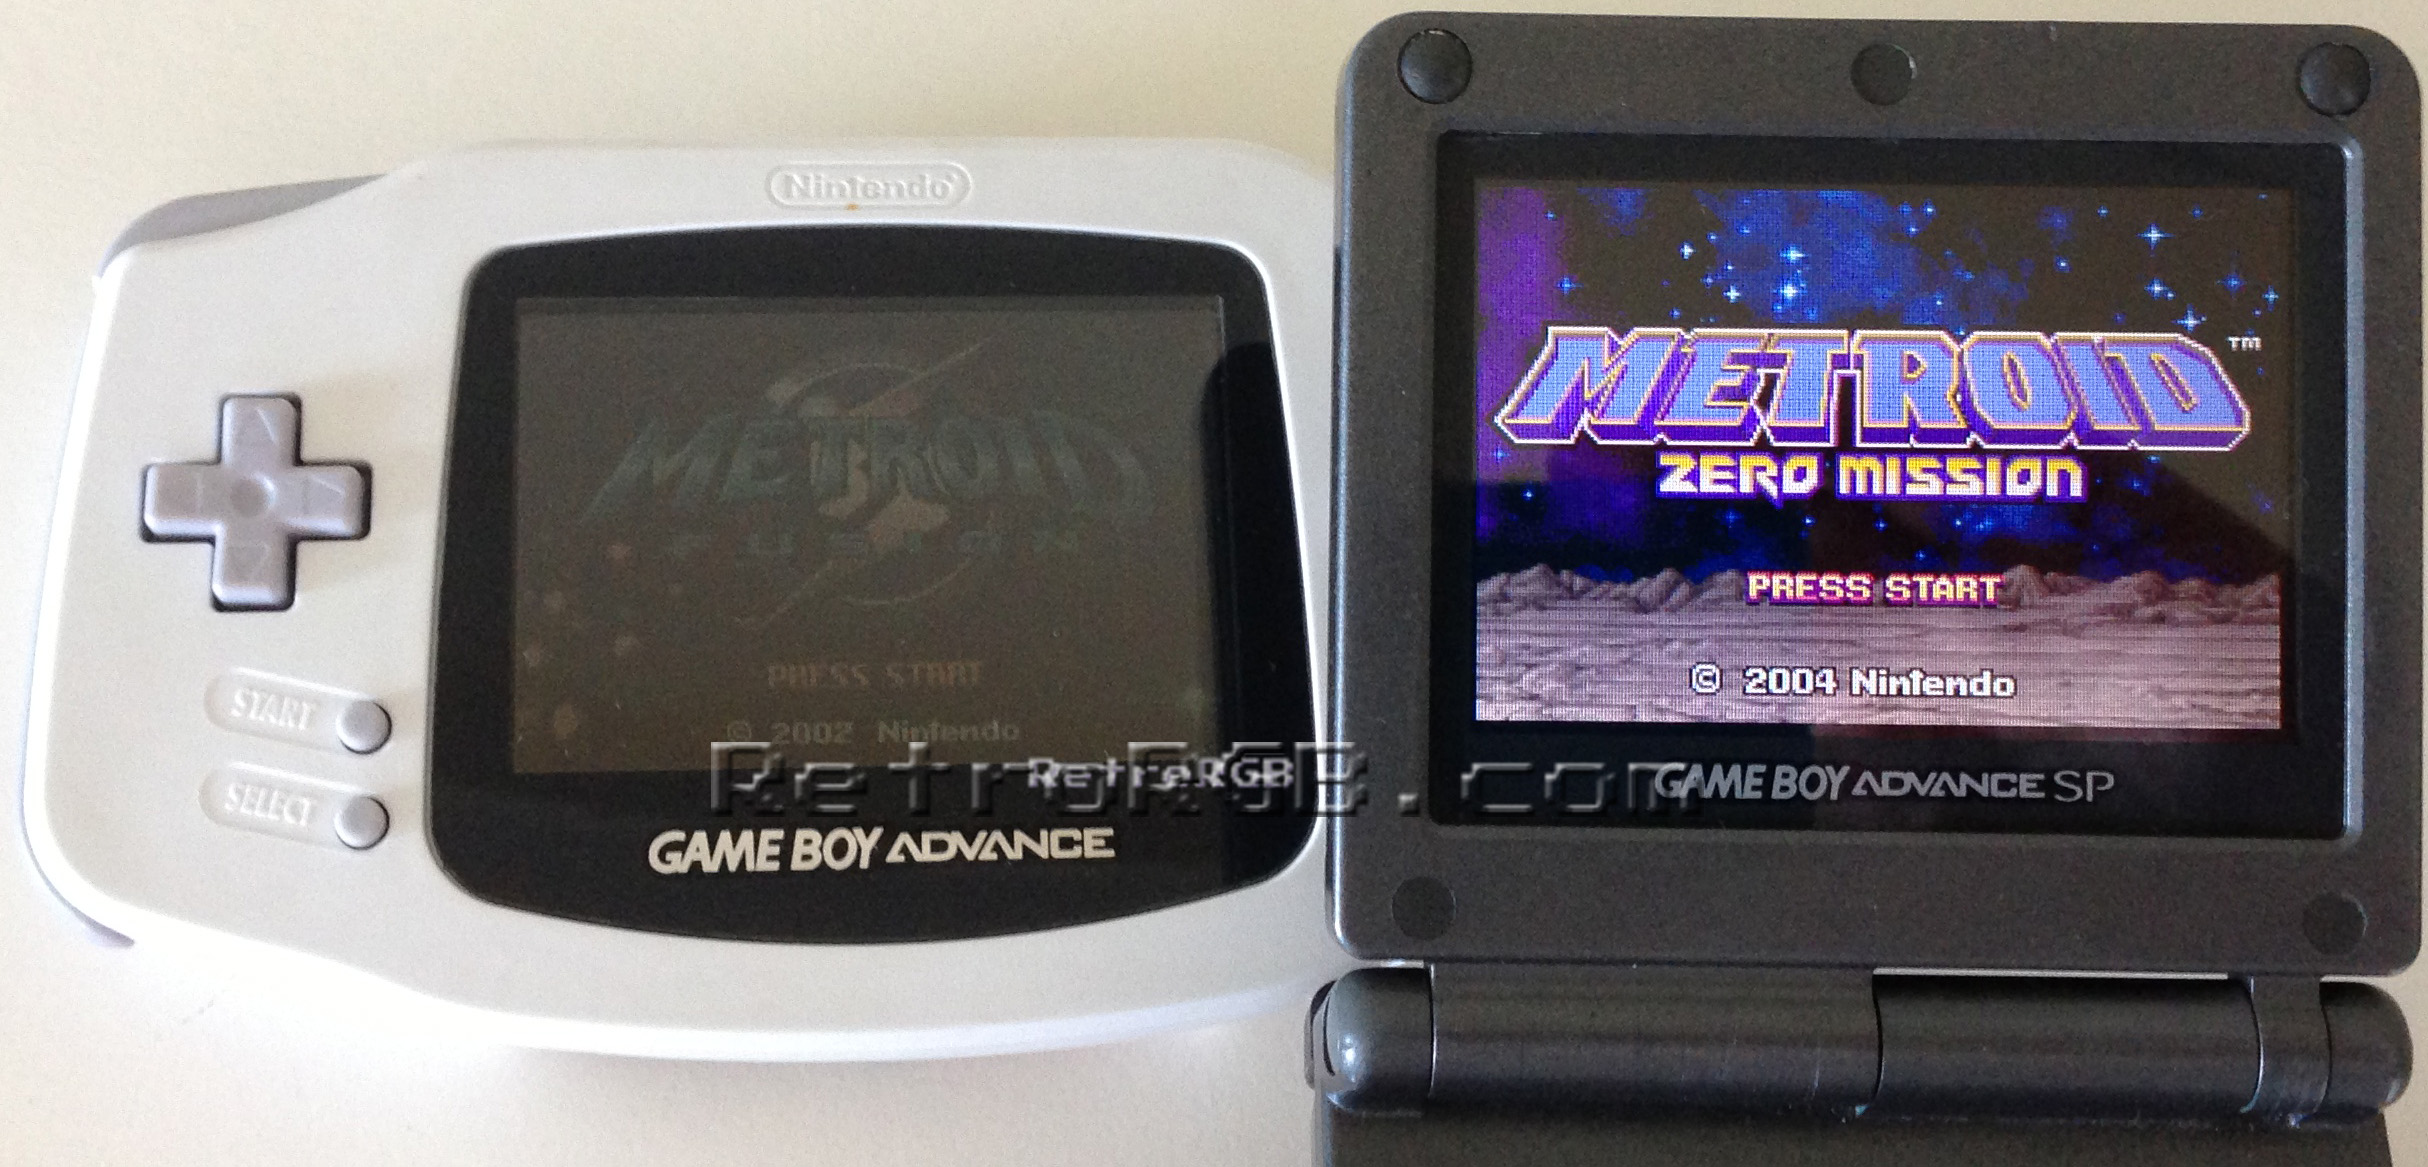 Gameboy color screen mod - Game Boy Advance Sp Ags 101 This Gba Has A Back Lit Screen Which Made It Look Incredible The Difference Is So Huge That It Feels Like An Entirely New